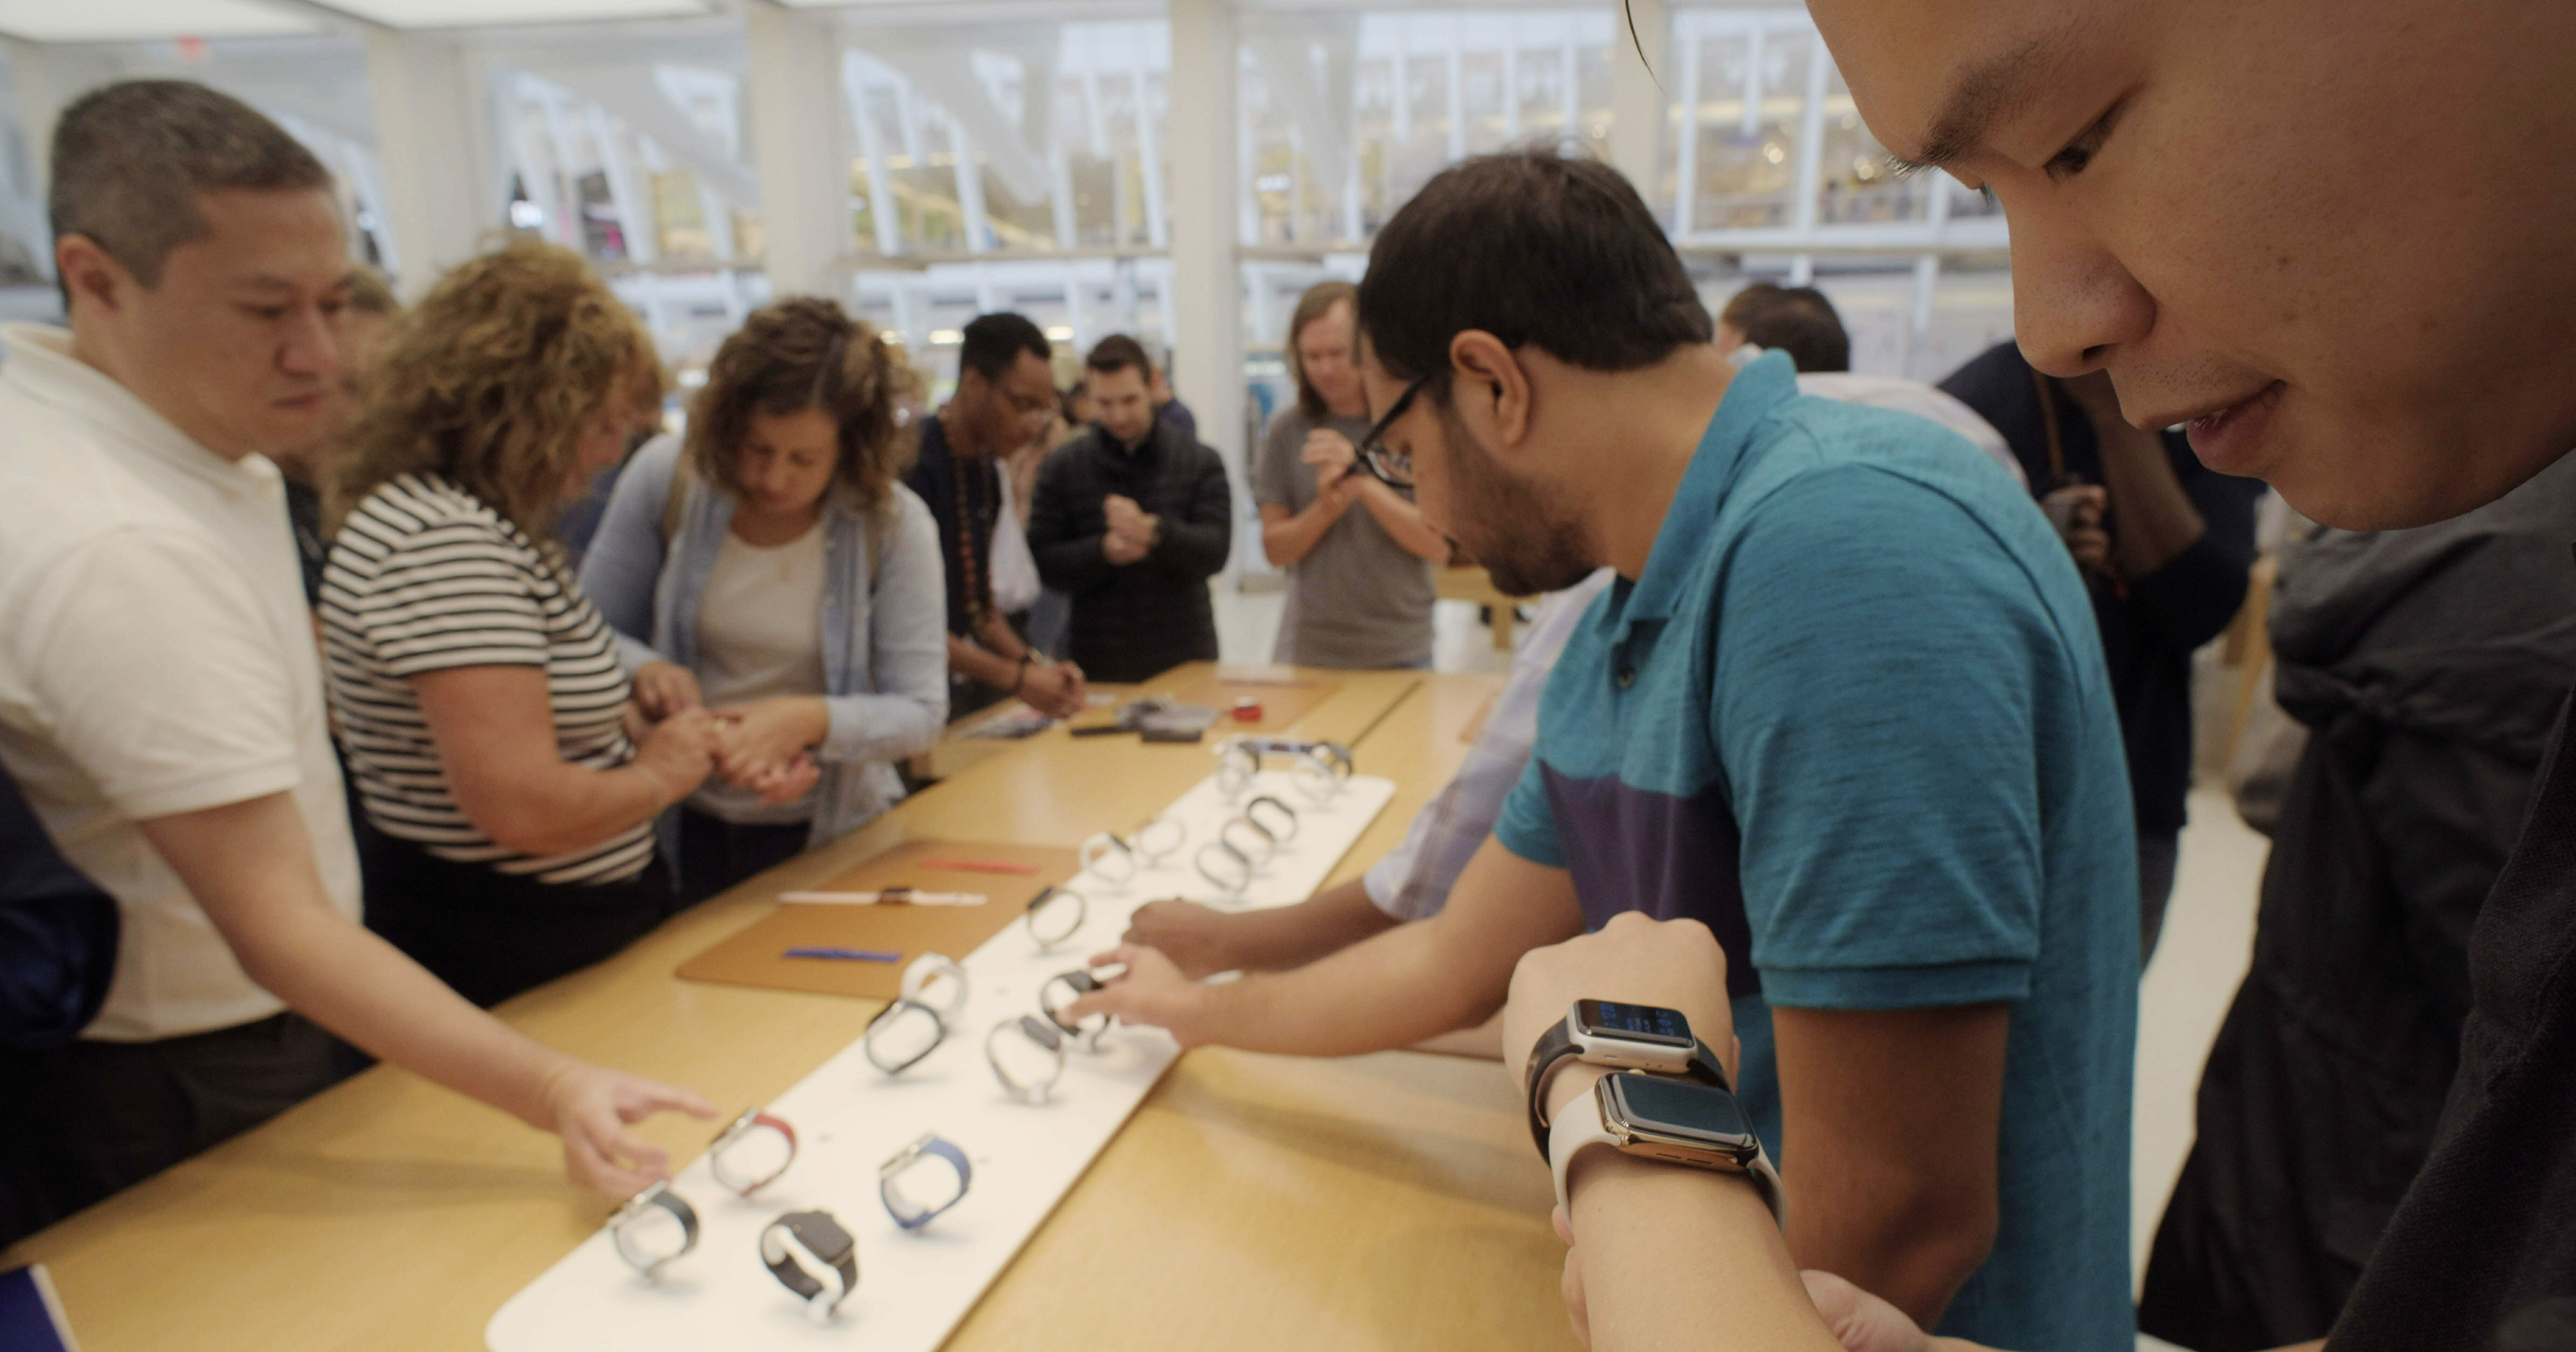 Customers look at Apple Watches at an Apple store in New York on Sept. 21, 2018.